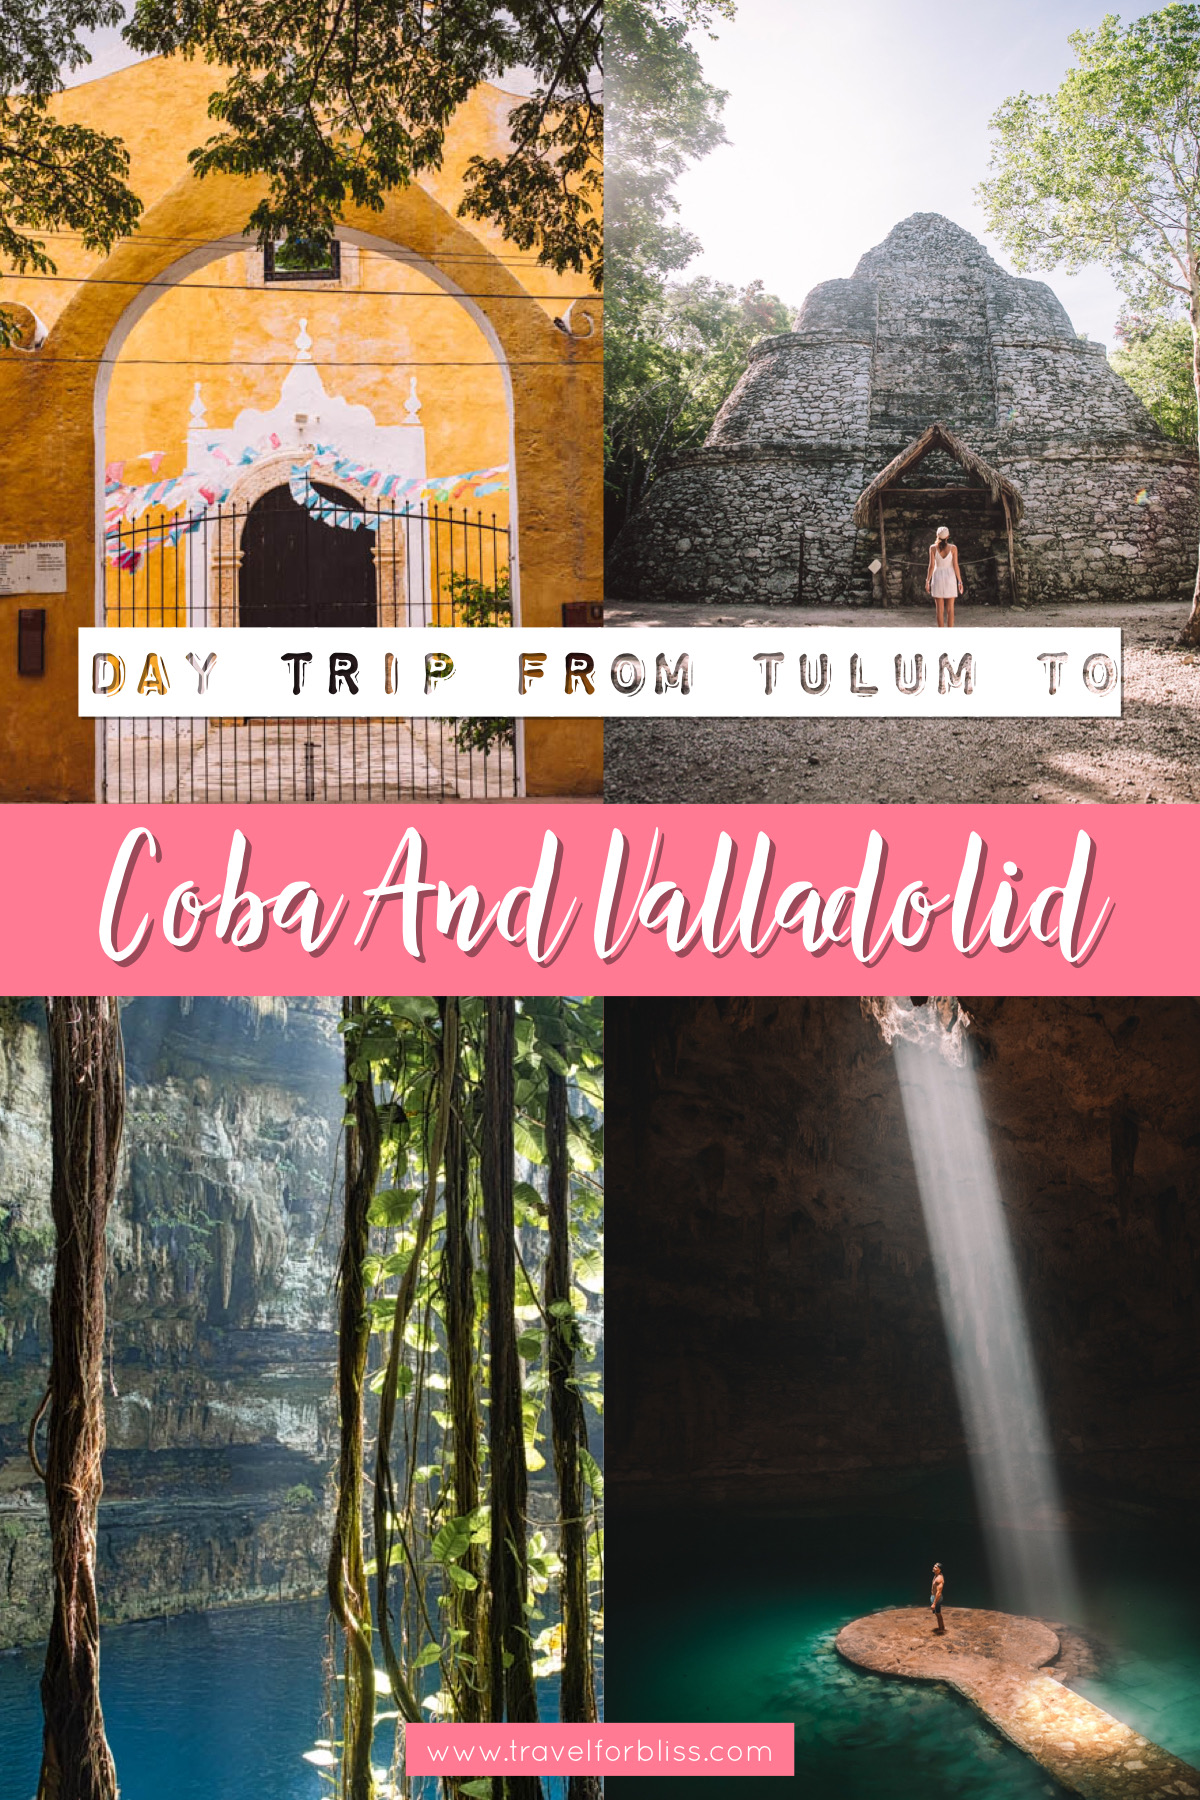 Make sure you do a day trip from Tulum to Coba and Valladolid and the cenotes around Valladolid. This is a unique area of Mexico with some of the best things to see and do on the Yucatan Peninsular.